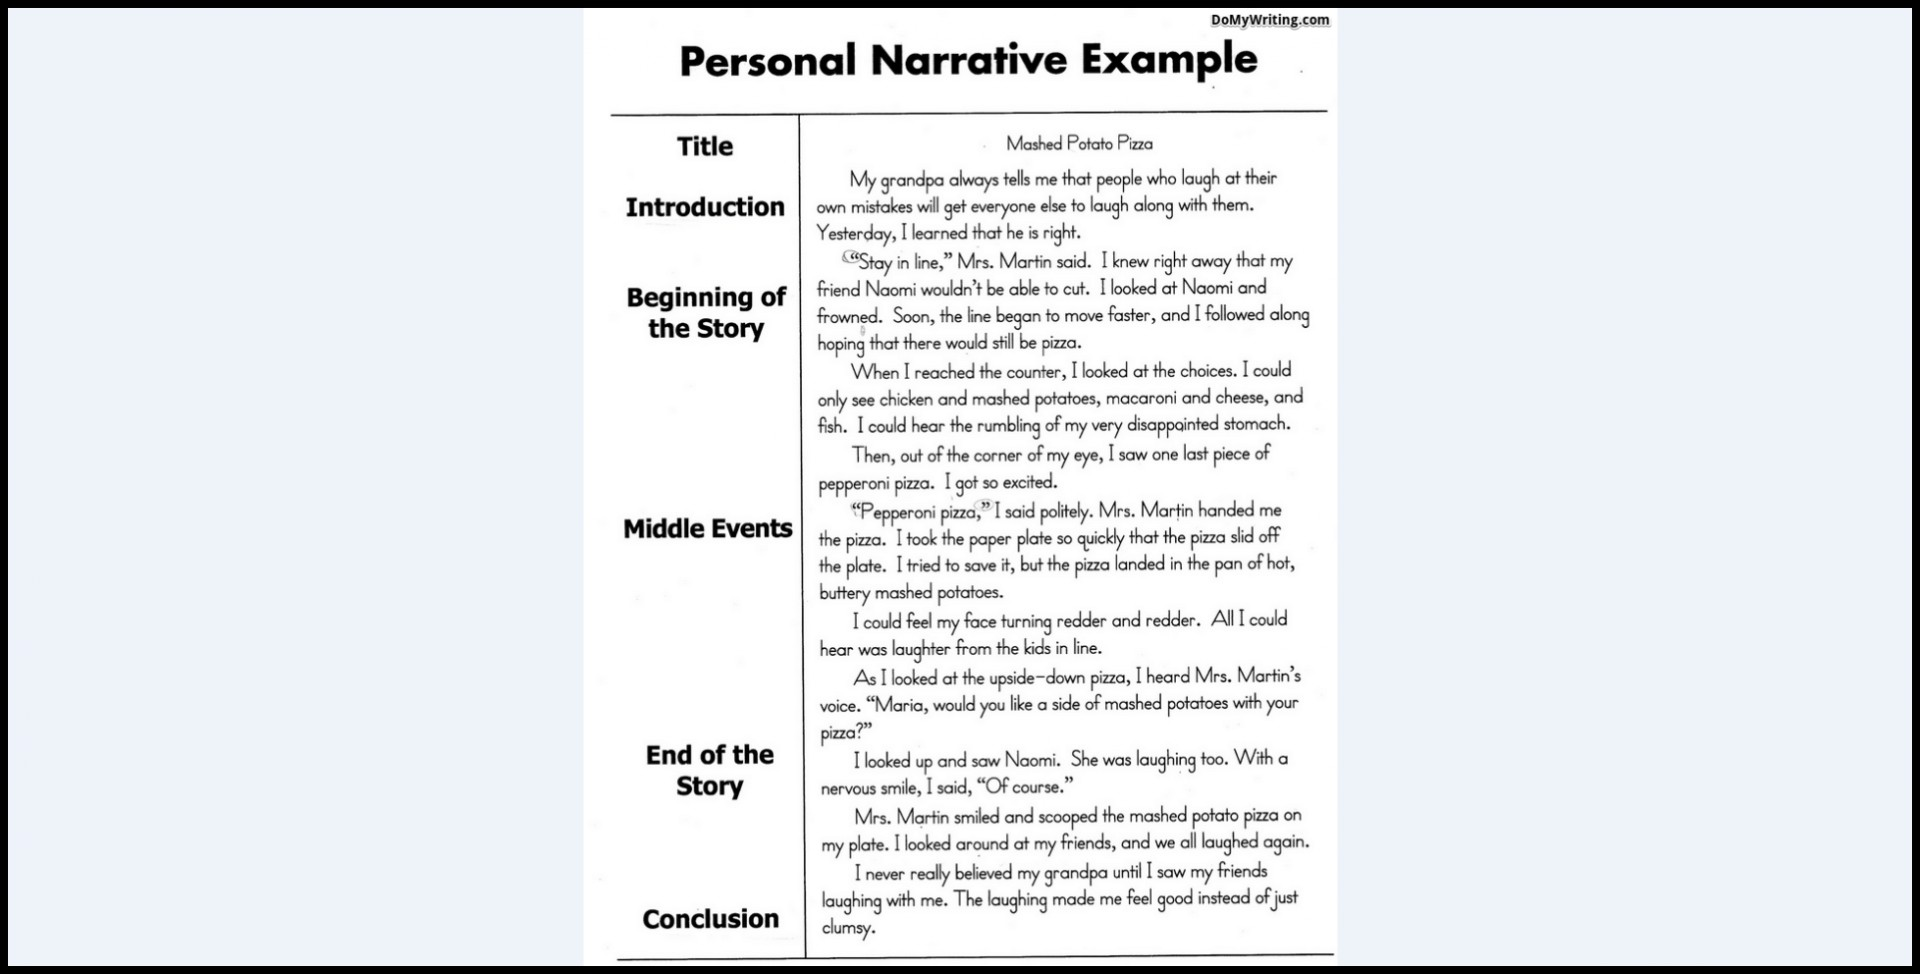 002 Narrative Essay Example What Is Breathtaking A Writing In Third Person 5th Grade And Their Examples 1920